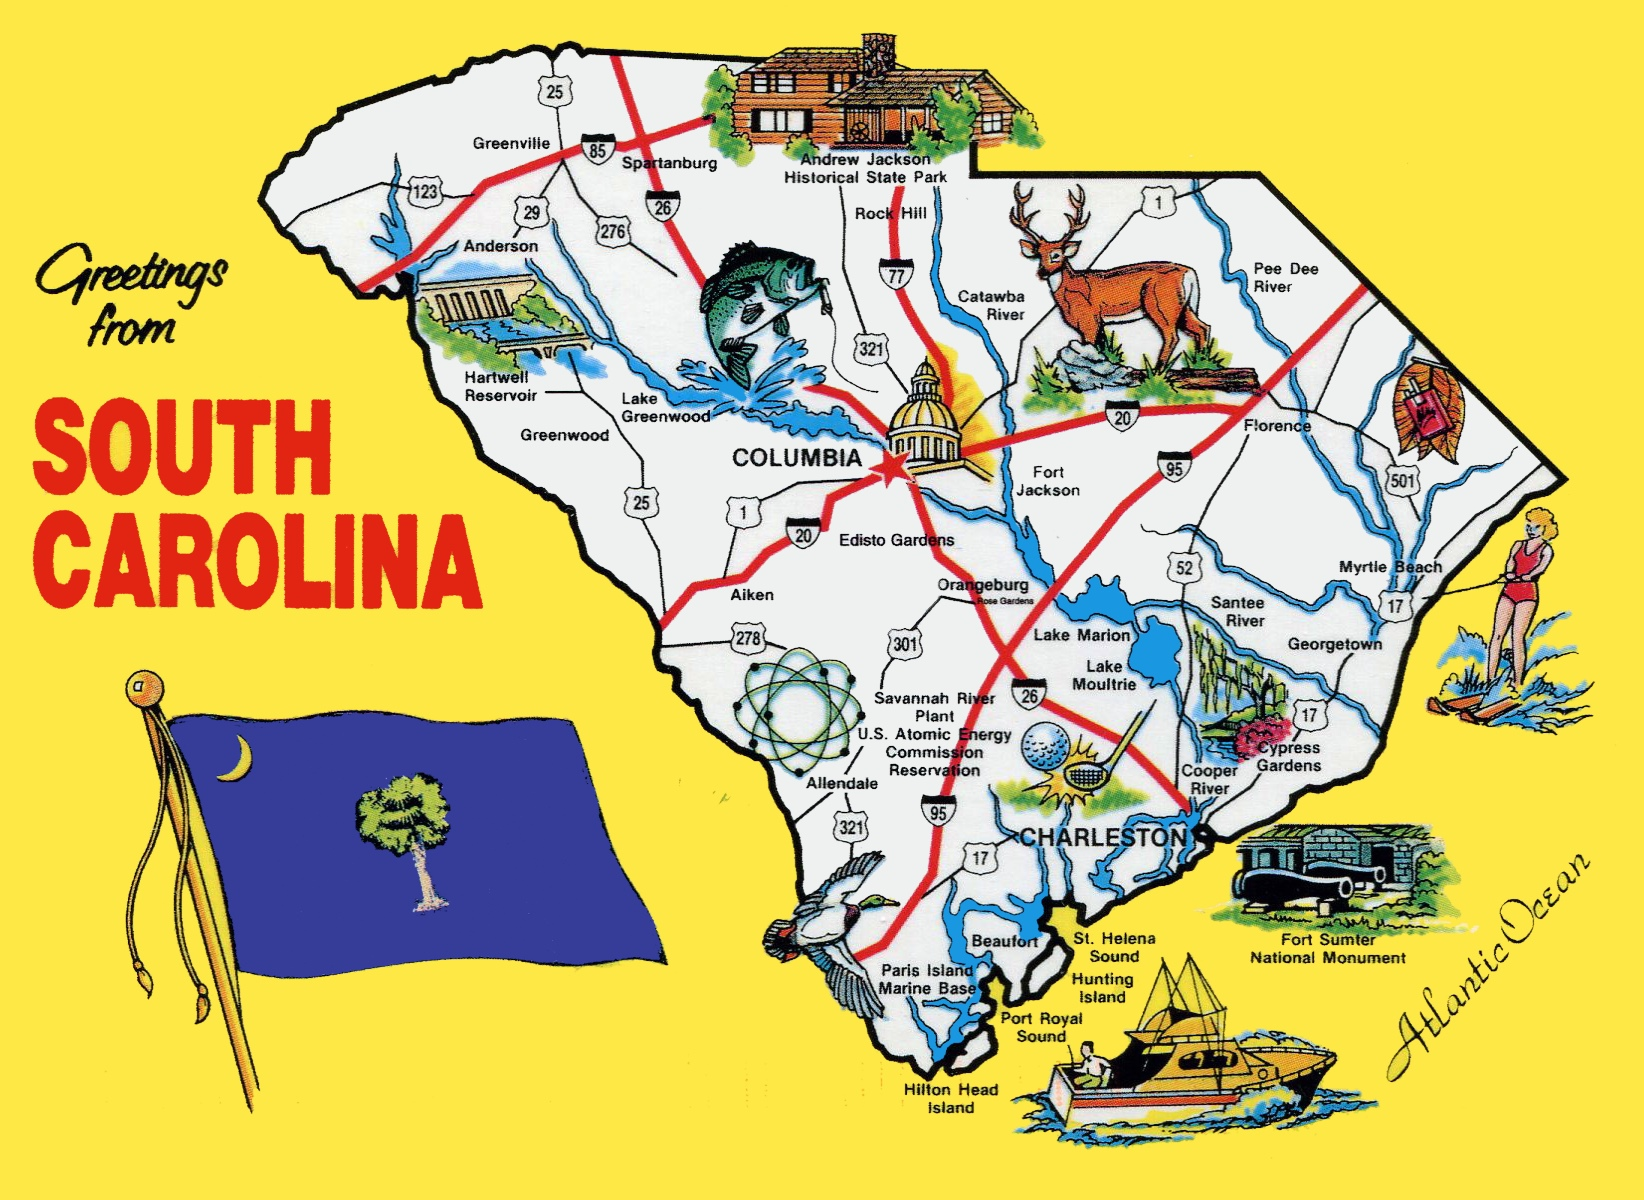 kentucky state map with cities with Pictorial Travel Map Of South Carolina on Printable Map Of Georgia also 41071b5 further State additionally 287104544967465636 further Florence Sc.